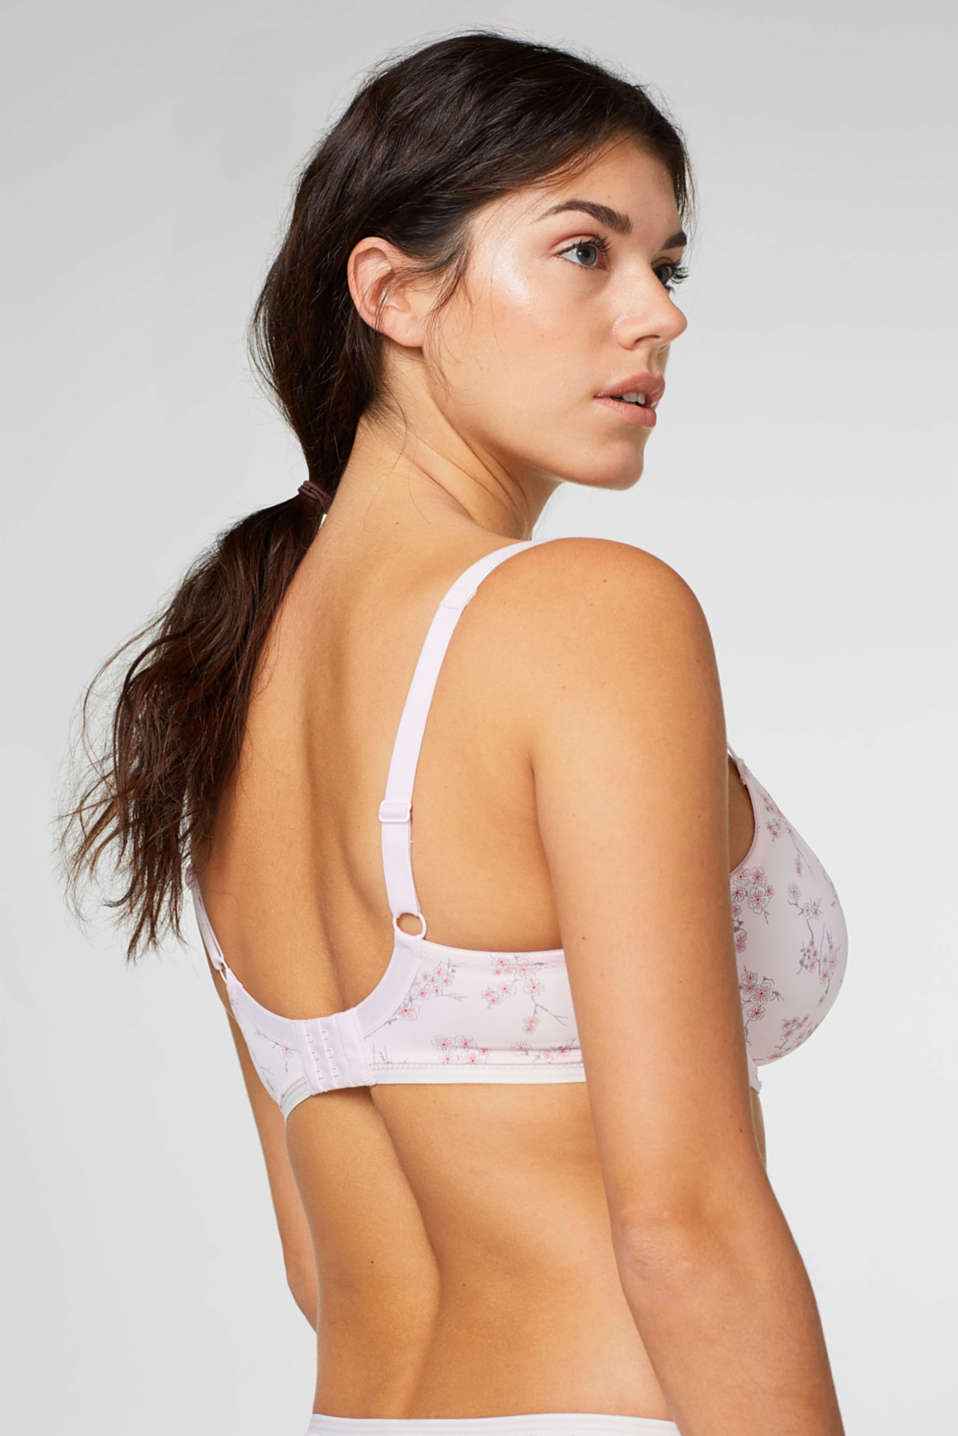 Unpadded underwire bra for big cups